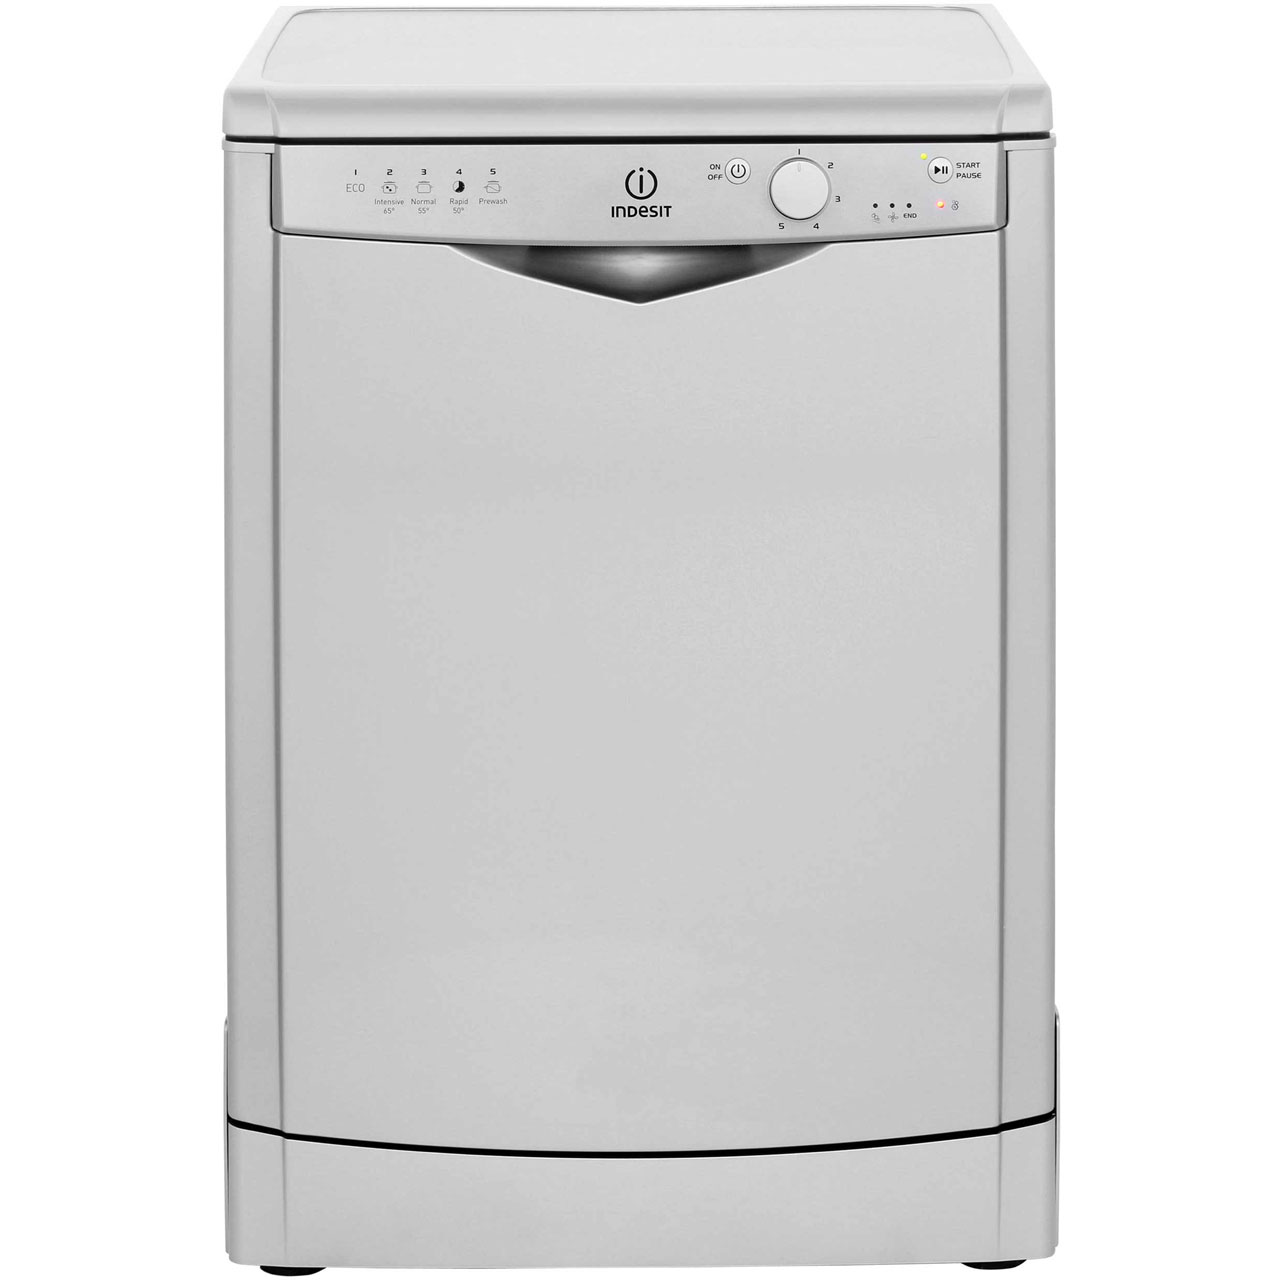 Indesit DFG15B1S Free Standing Dishwasher in Silver